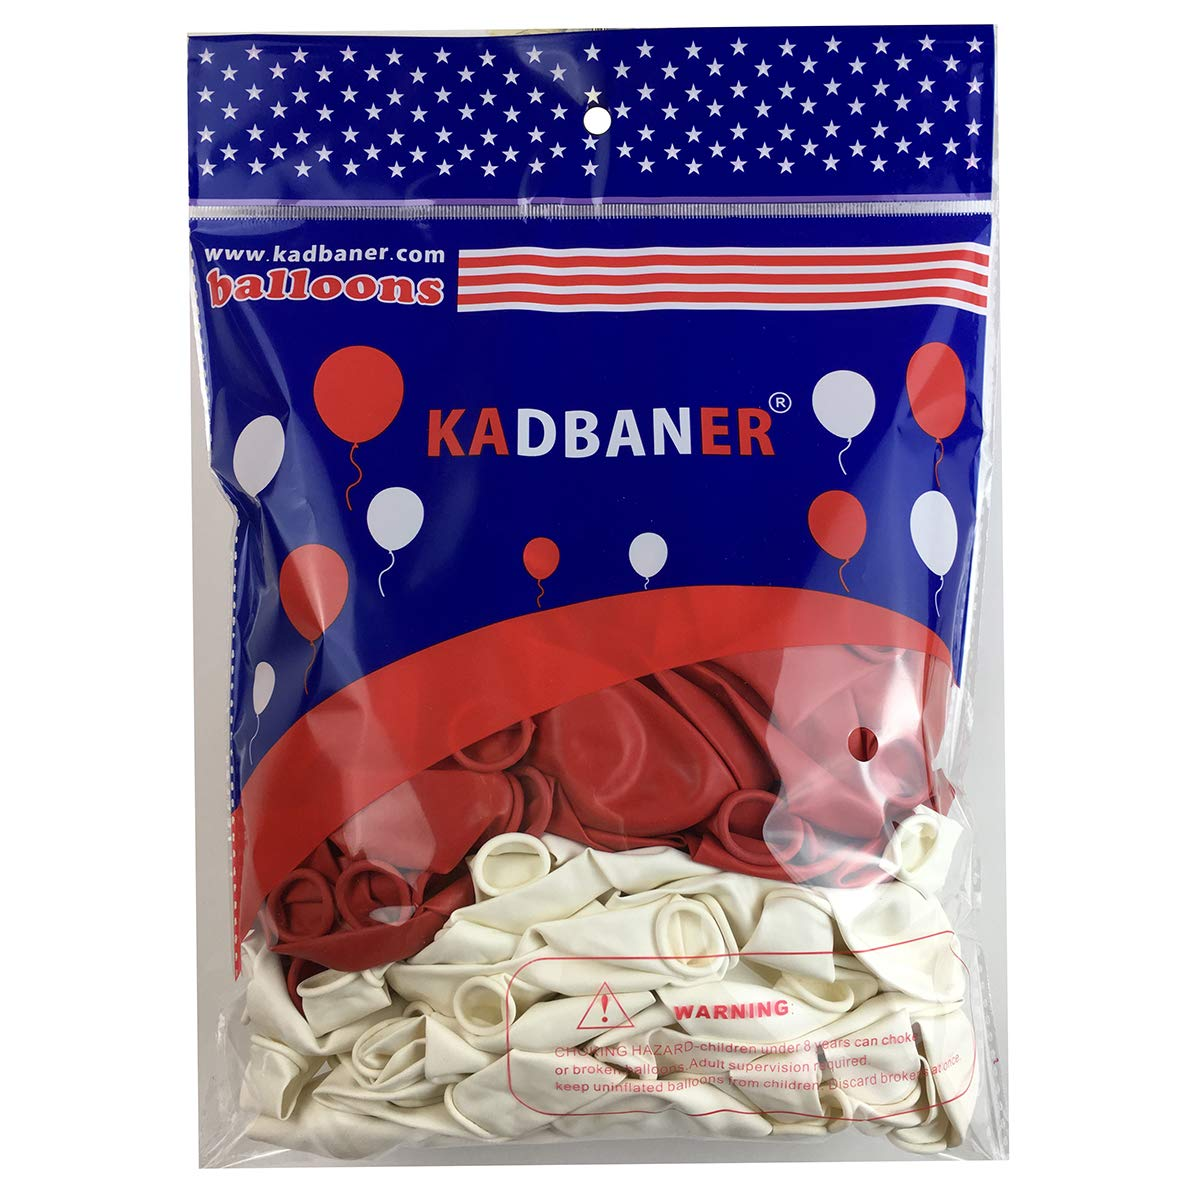 100 Premium Quality Balloons: 12 inch Red and white latex balloons/wedding/birthday party decorations and Events Christmas Party and etc. by KADBANER (Image #3)